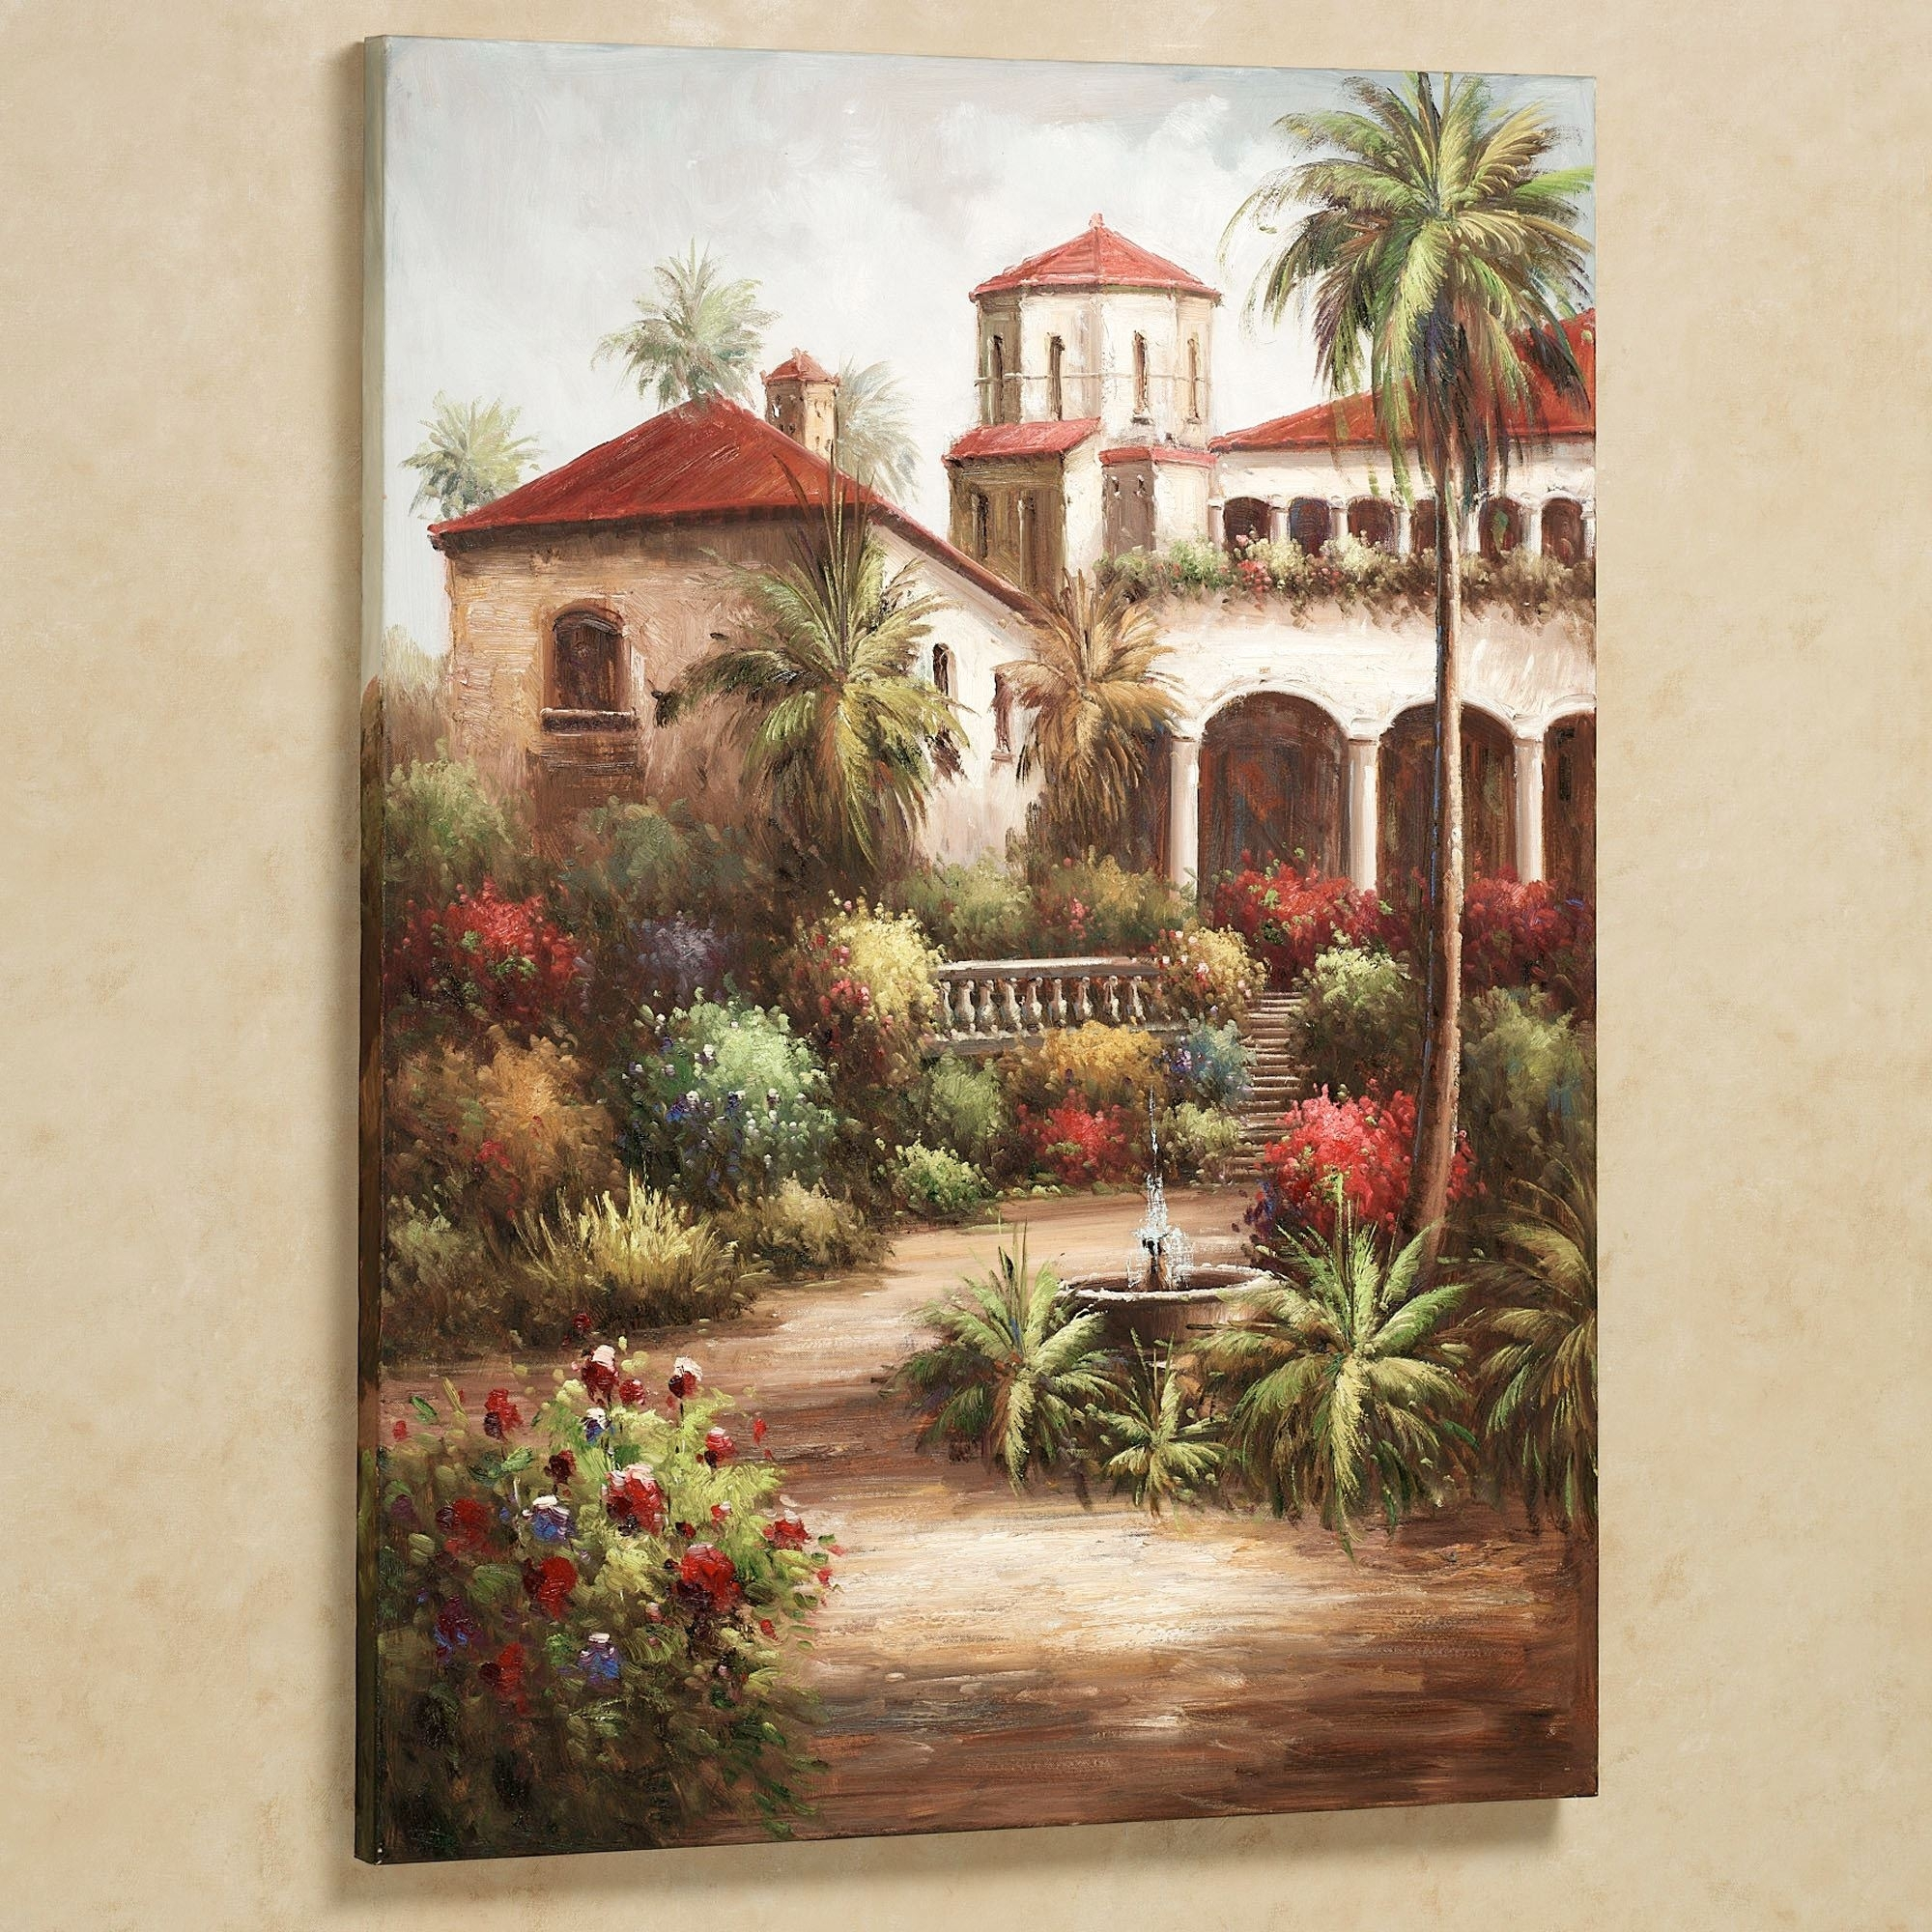 Tuscan Wall Art Garden – Awesome House : Kitchen Tuscan Wall Art Tile Within Best And Newest Tuscan Wall Art (View 16 of 20)